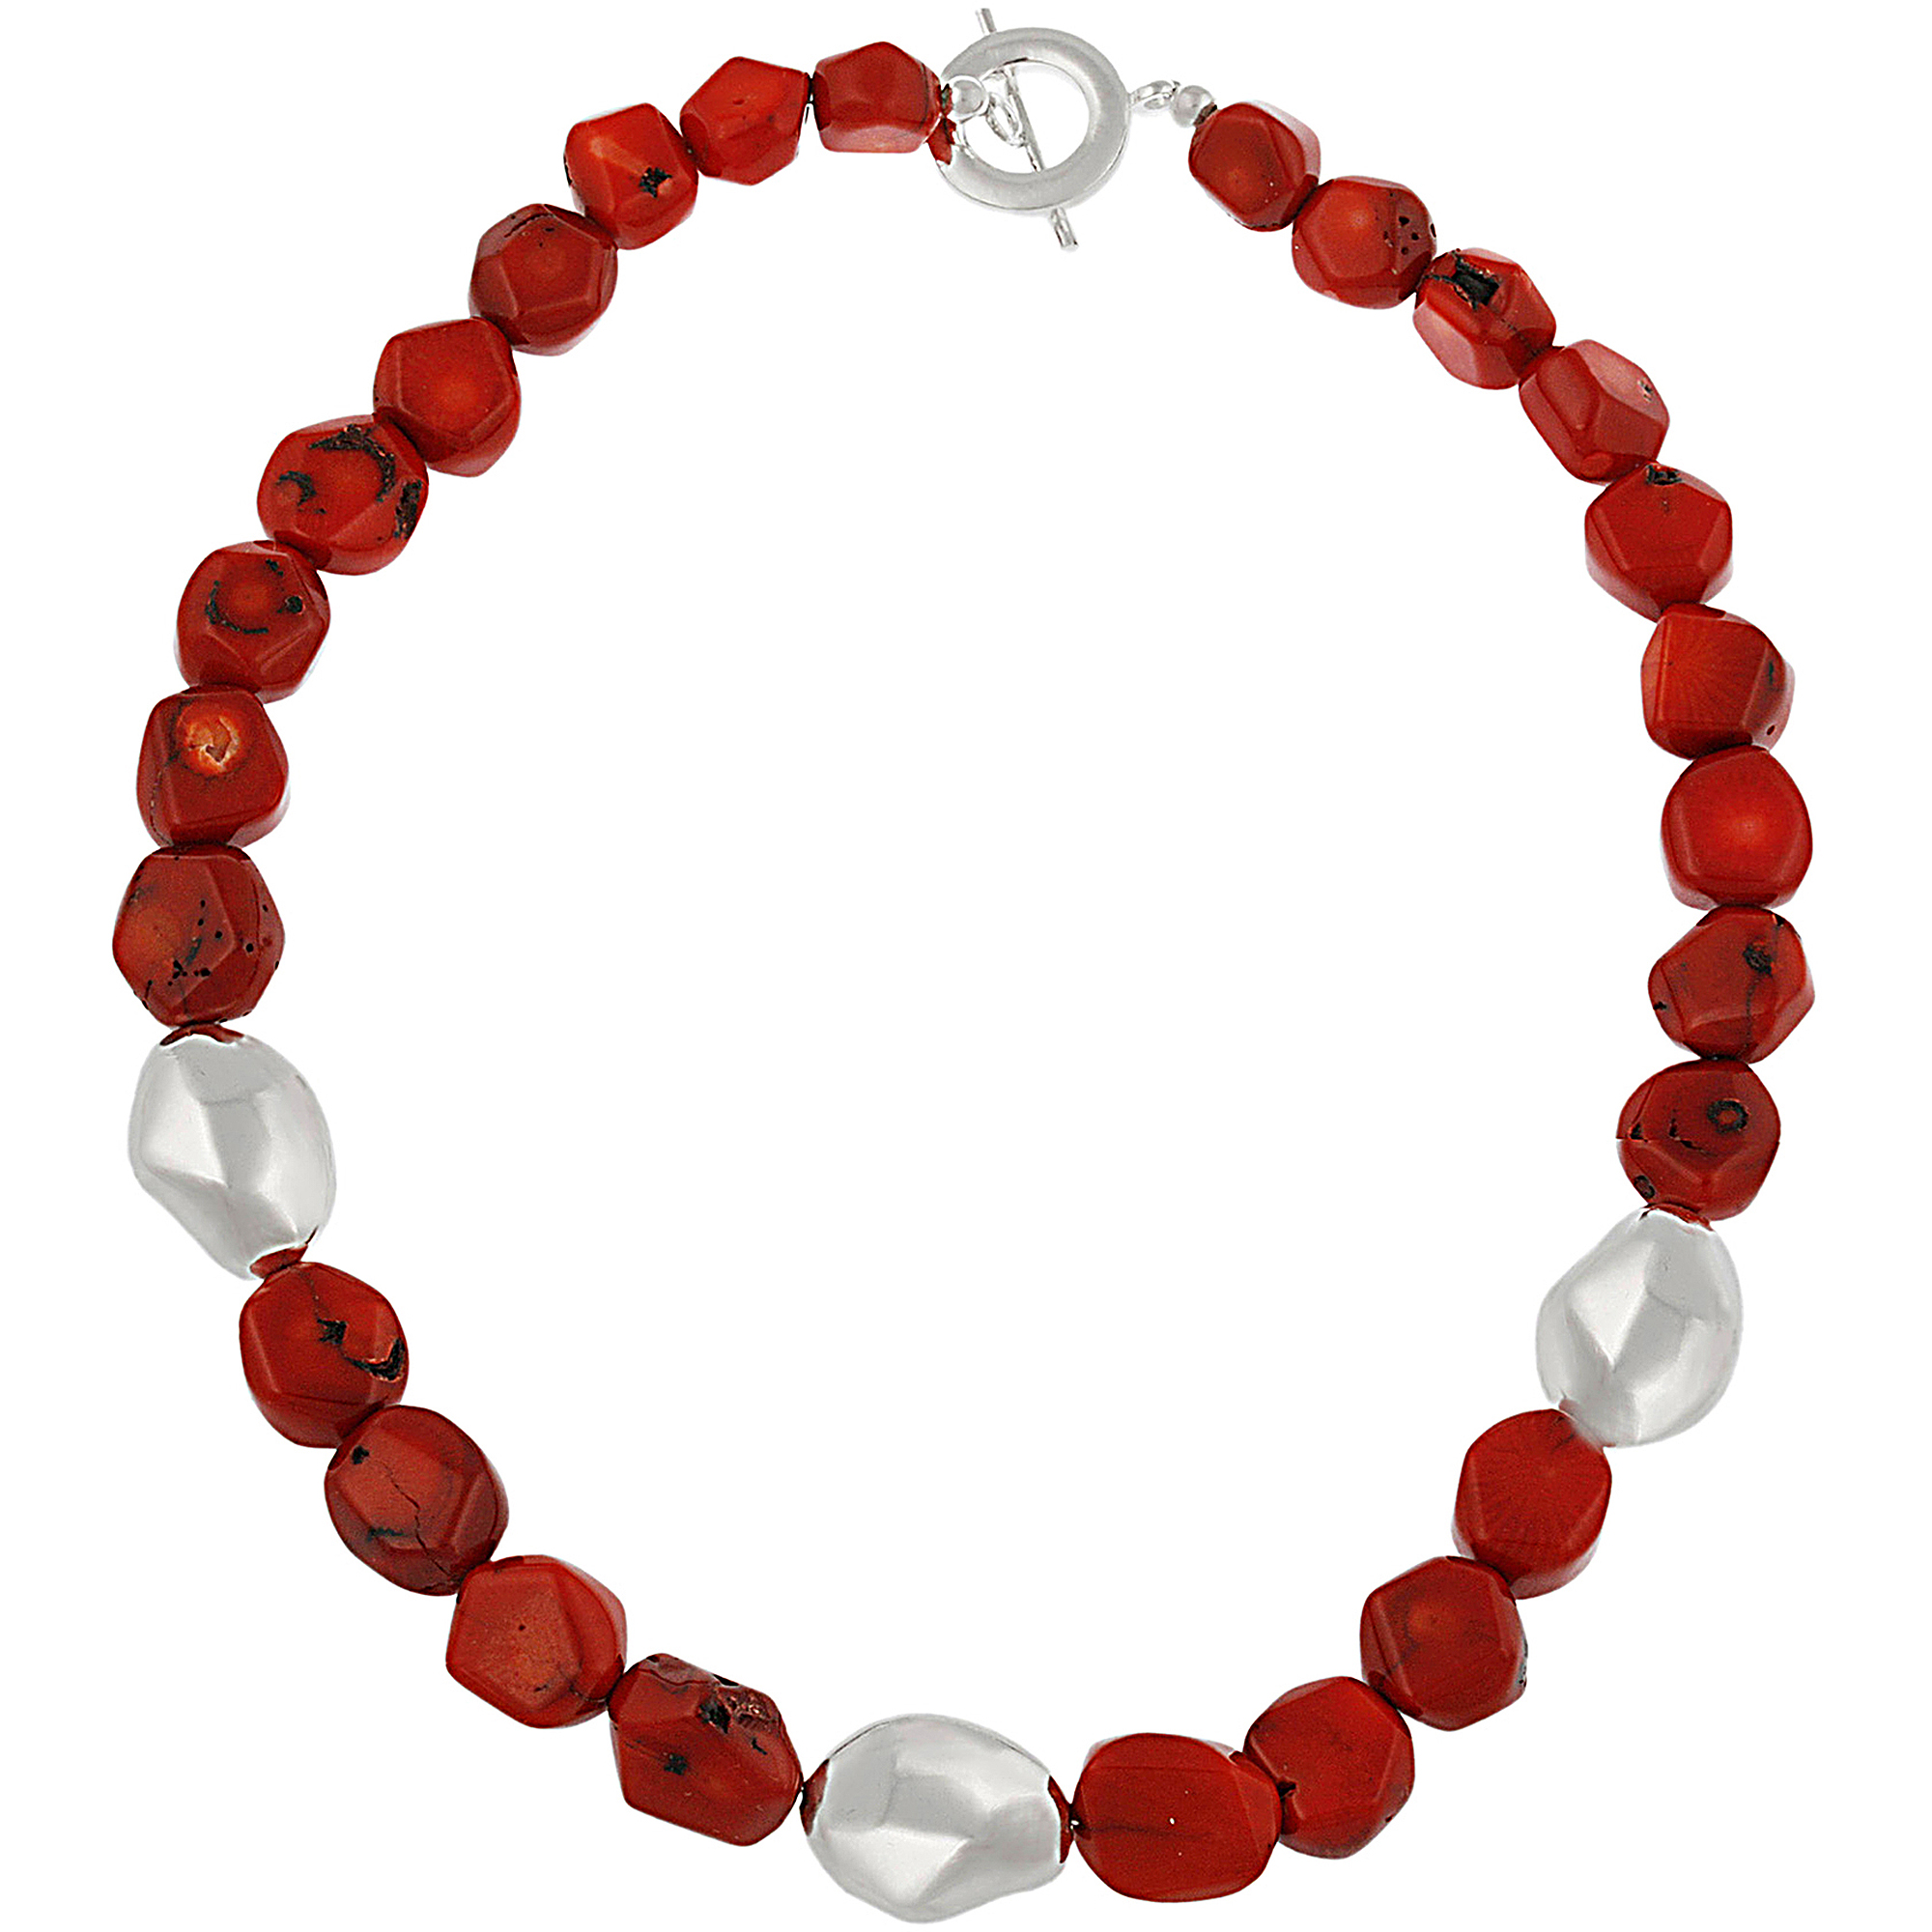 "Coral and Silver Nuggets Sterling Silver Station Necklace, 16"" by Generic"